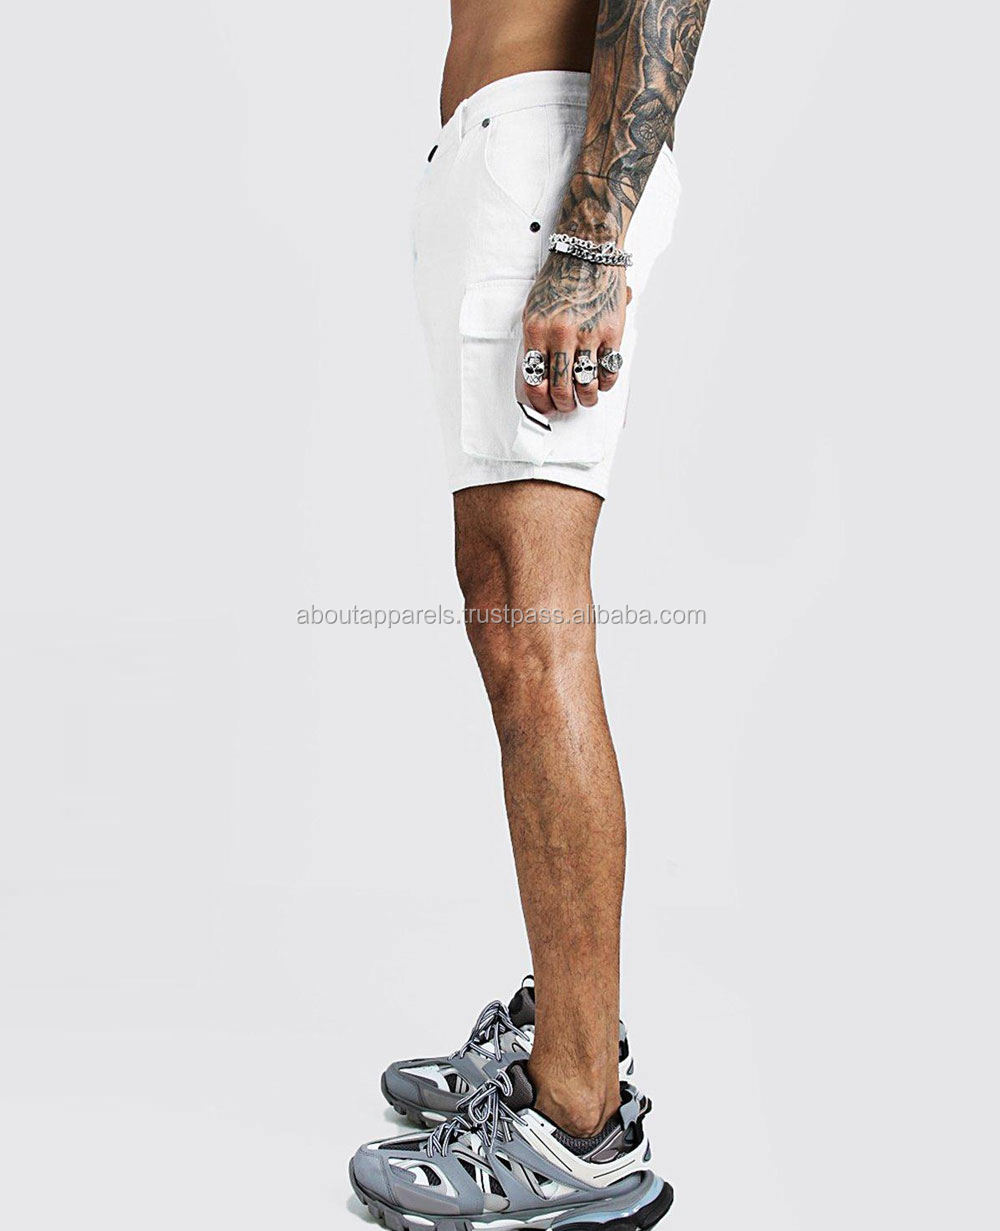 2019 fashion men sportswear dry mesh custom basketball shorts for men